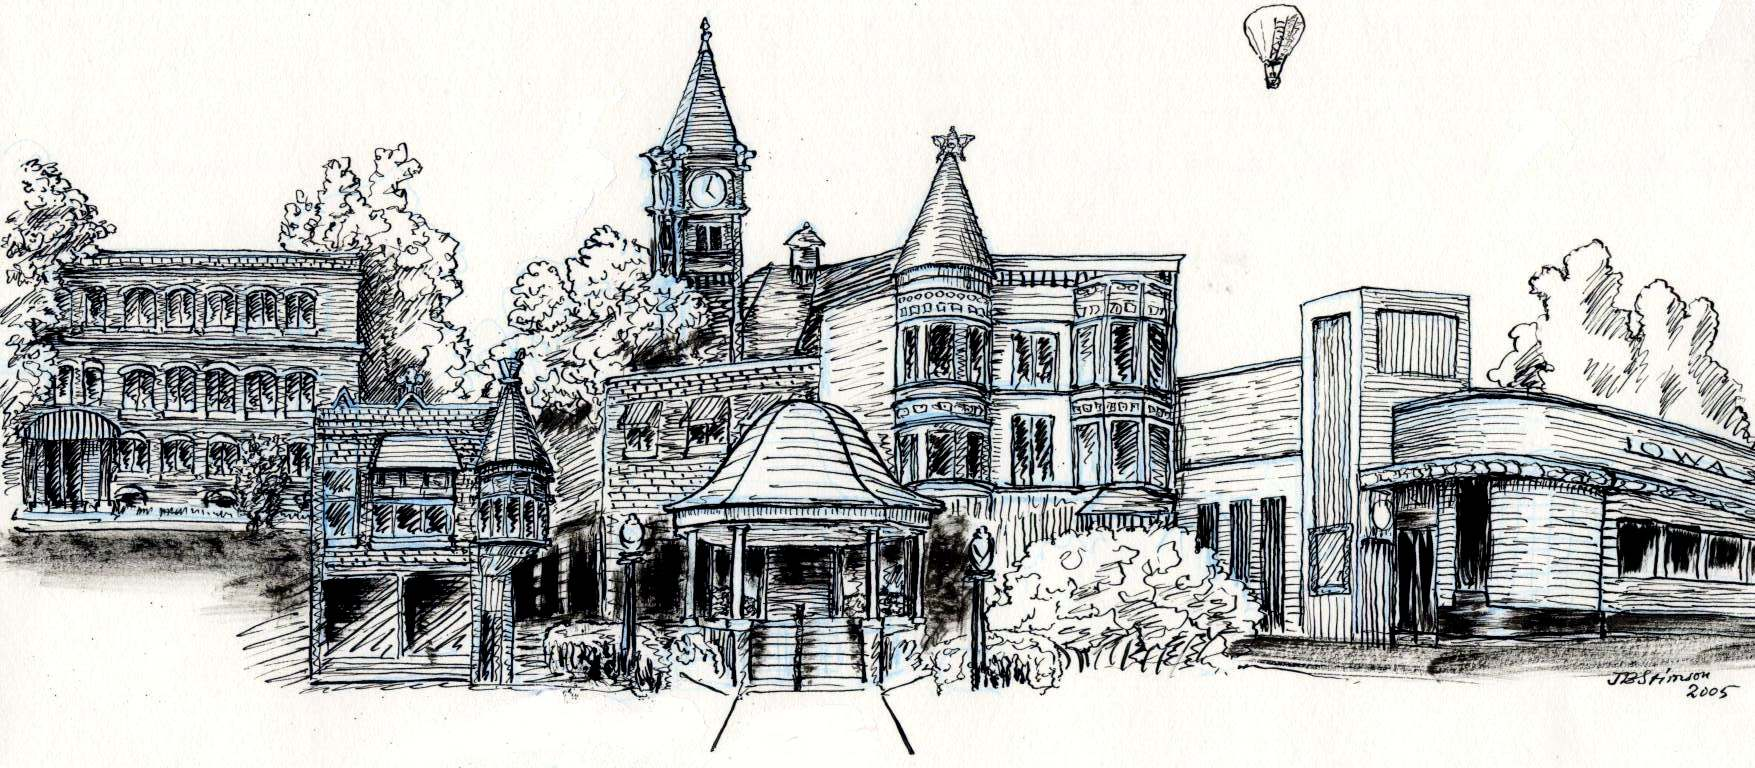 John Stimson's drawing of the Square in Fairfield, Iowa